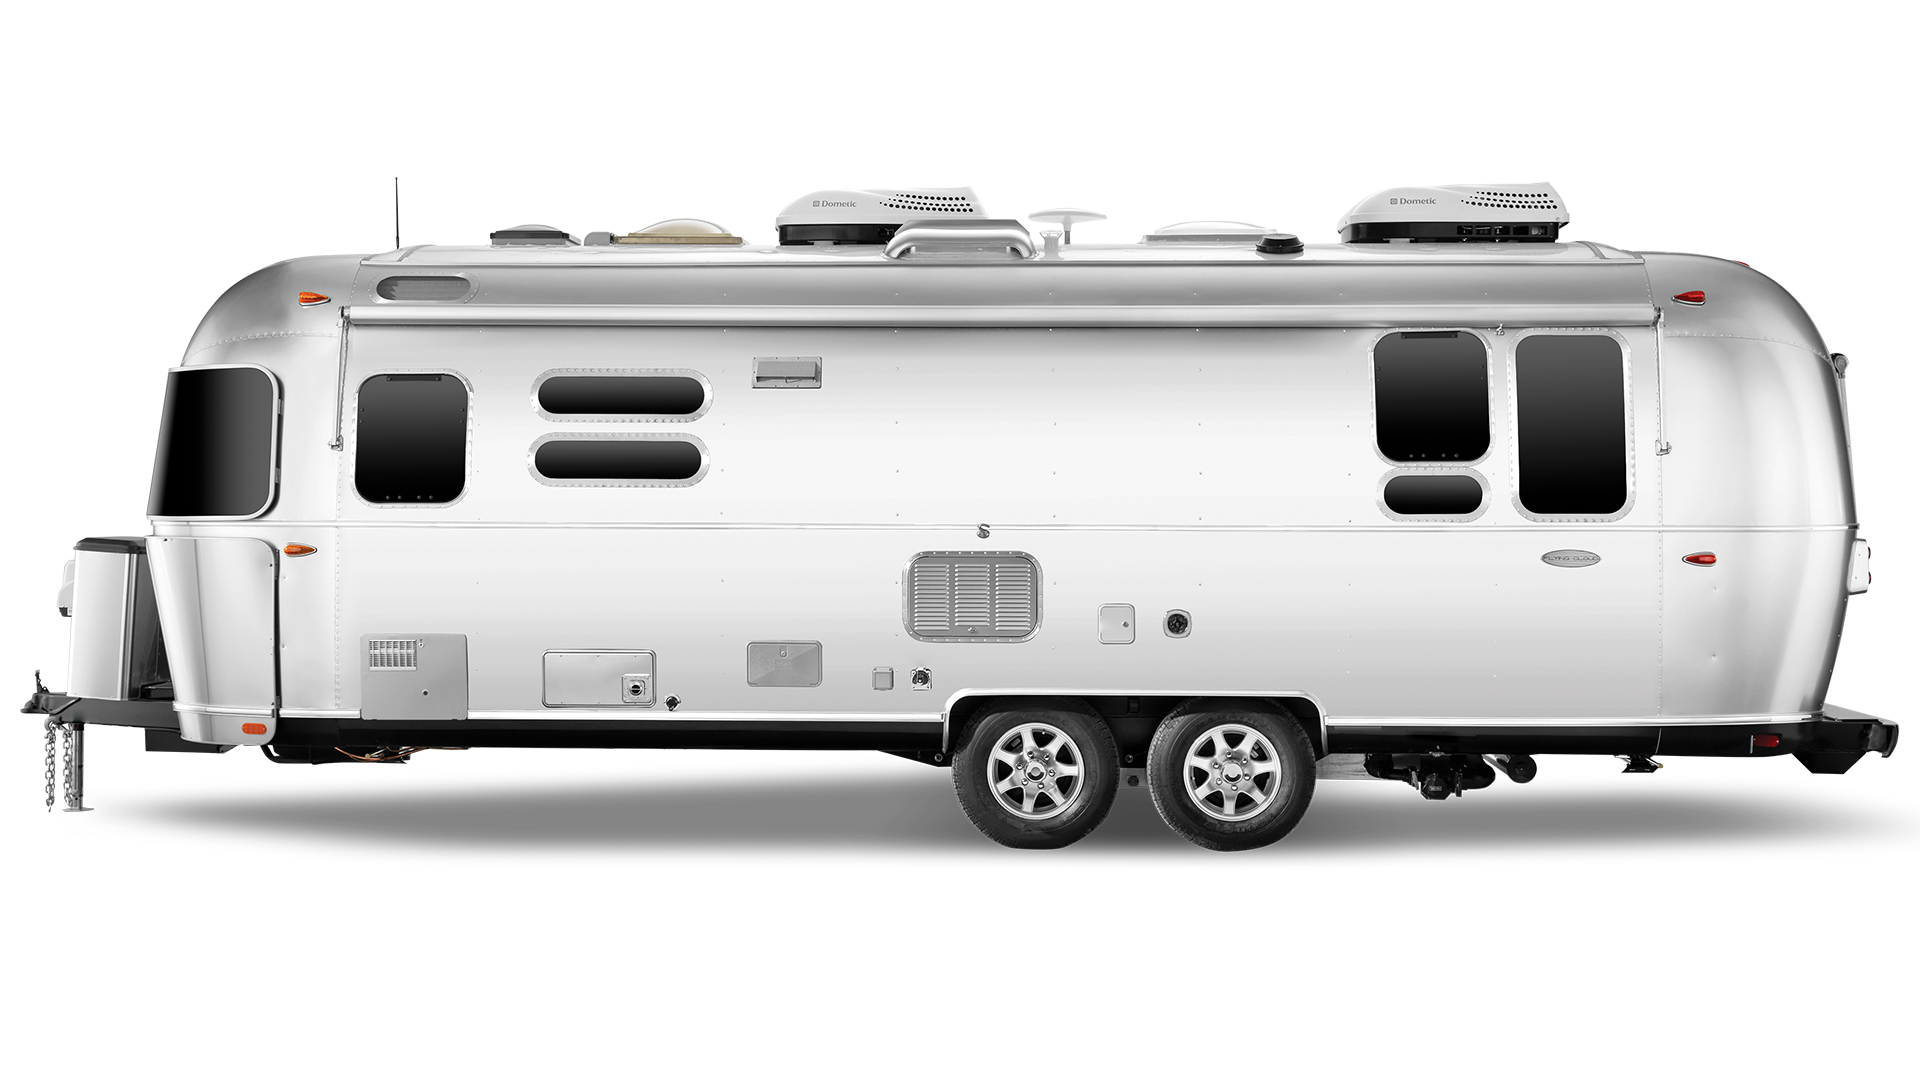 Airstream-Flying-Cloud-28RB-Travel-Trailer-Exterior-Street-Side